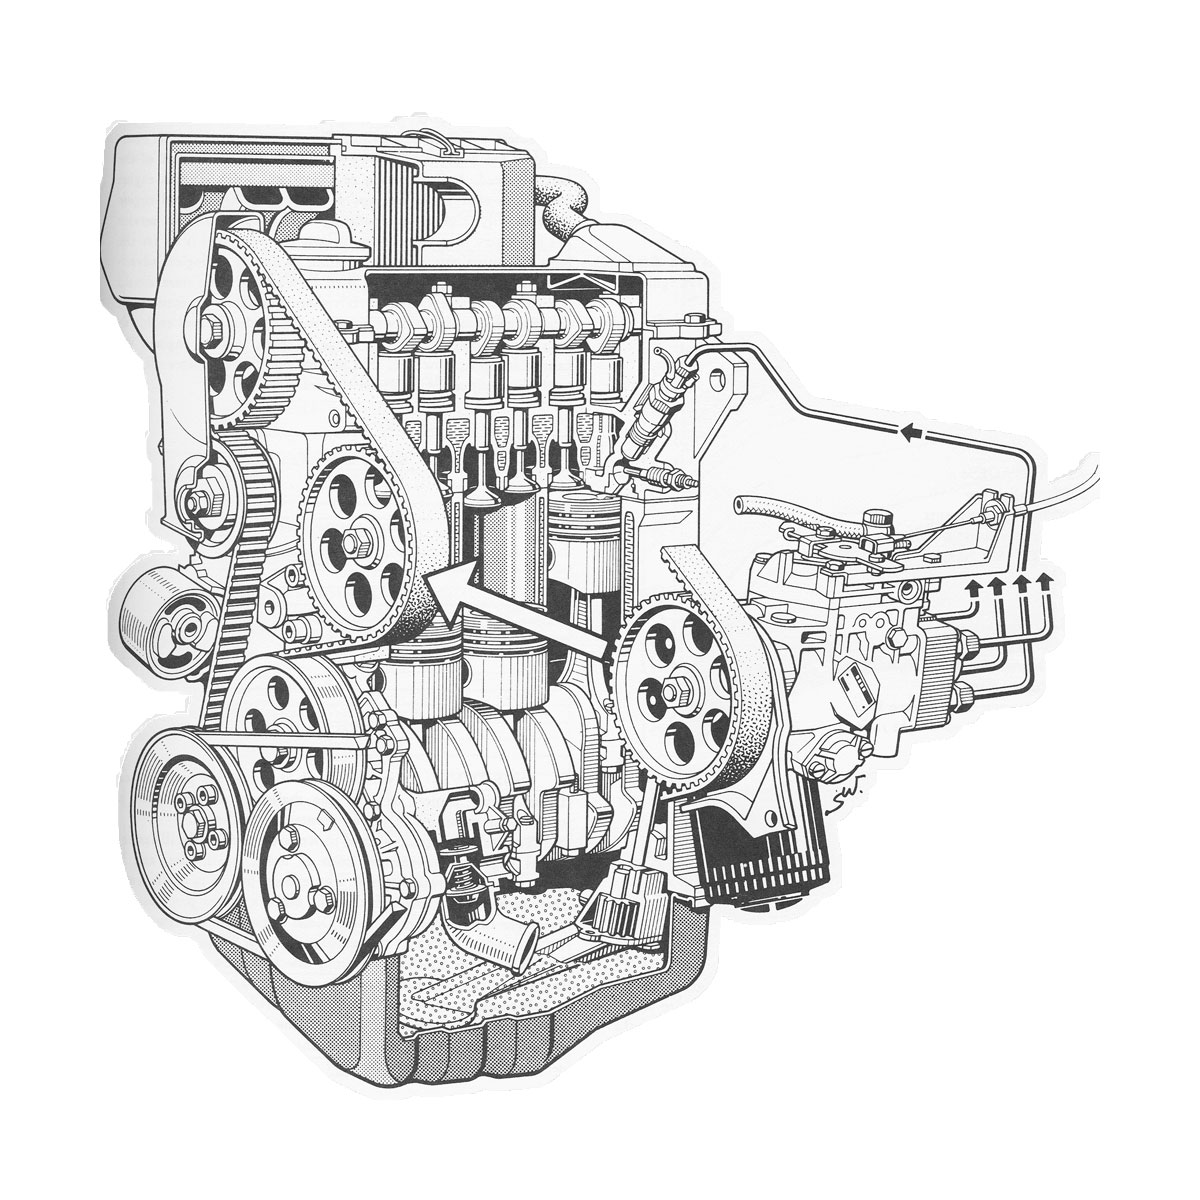 Vintage Diesel Truck Engine cutaway drawing